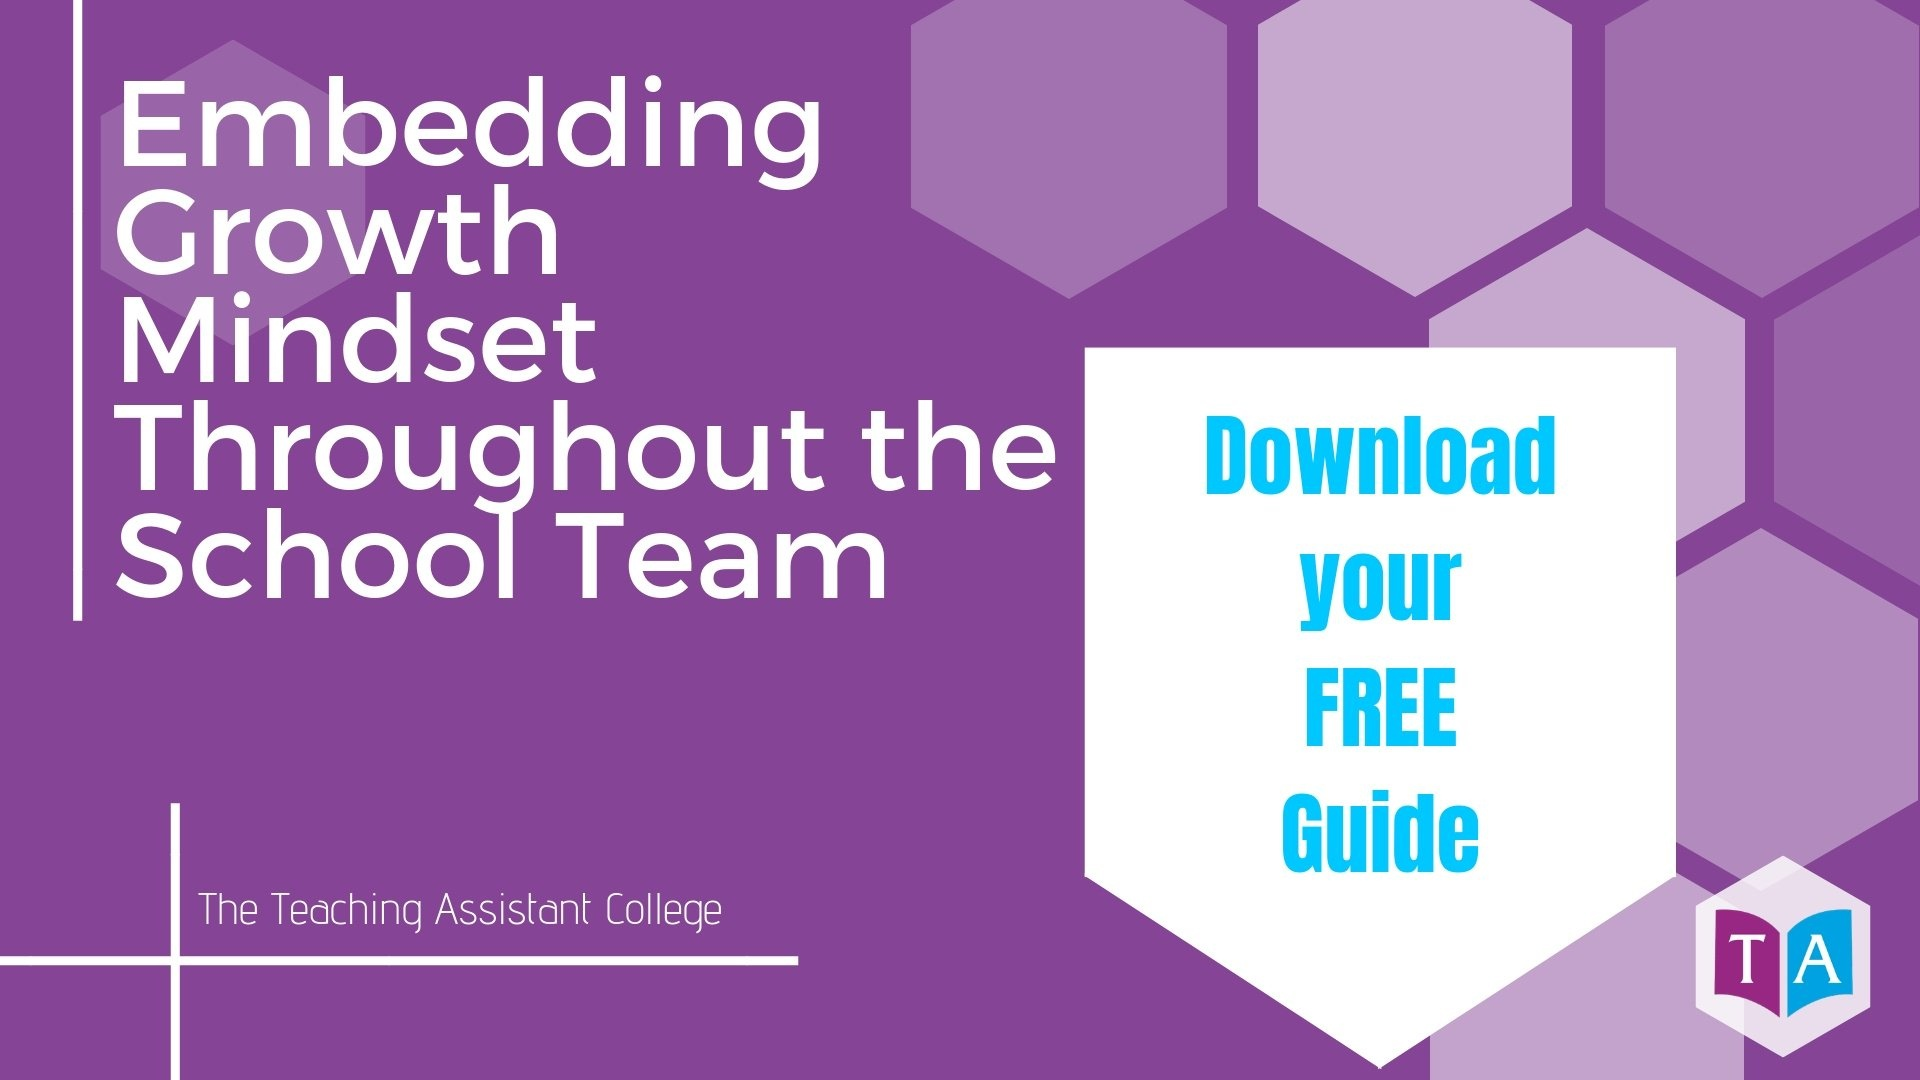 Download your free growth mindset guide